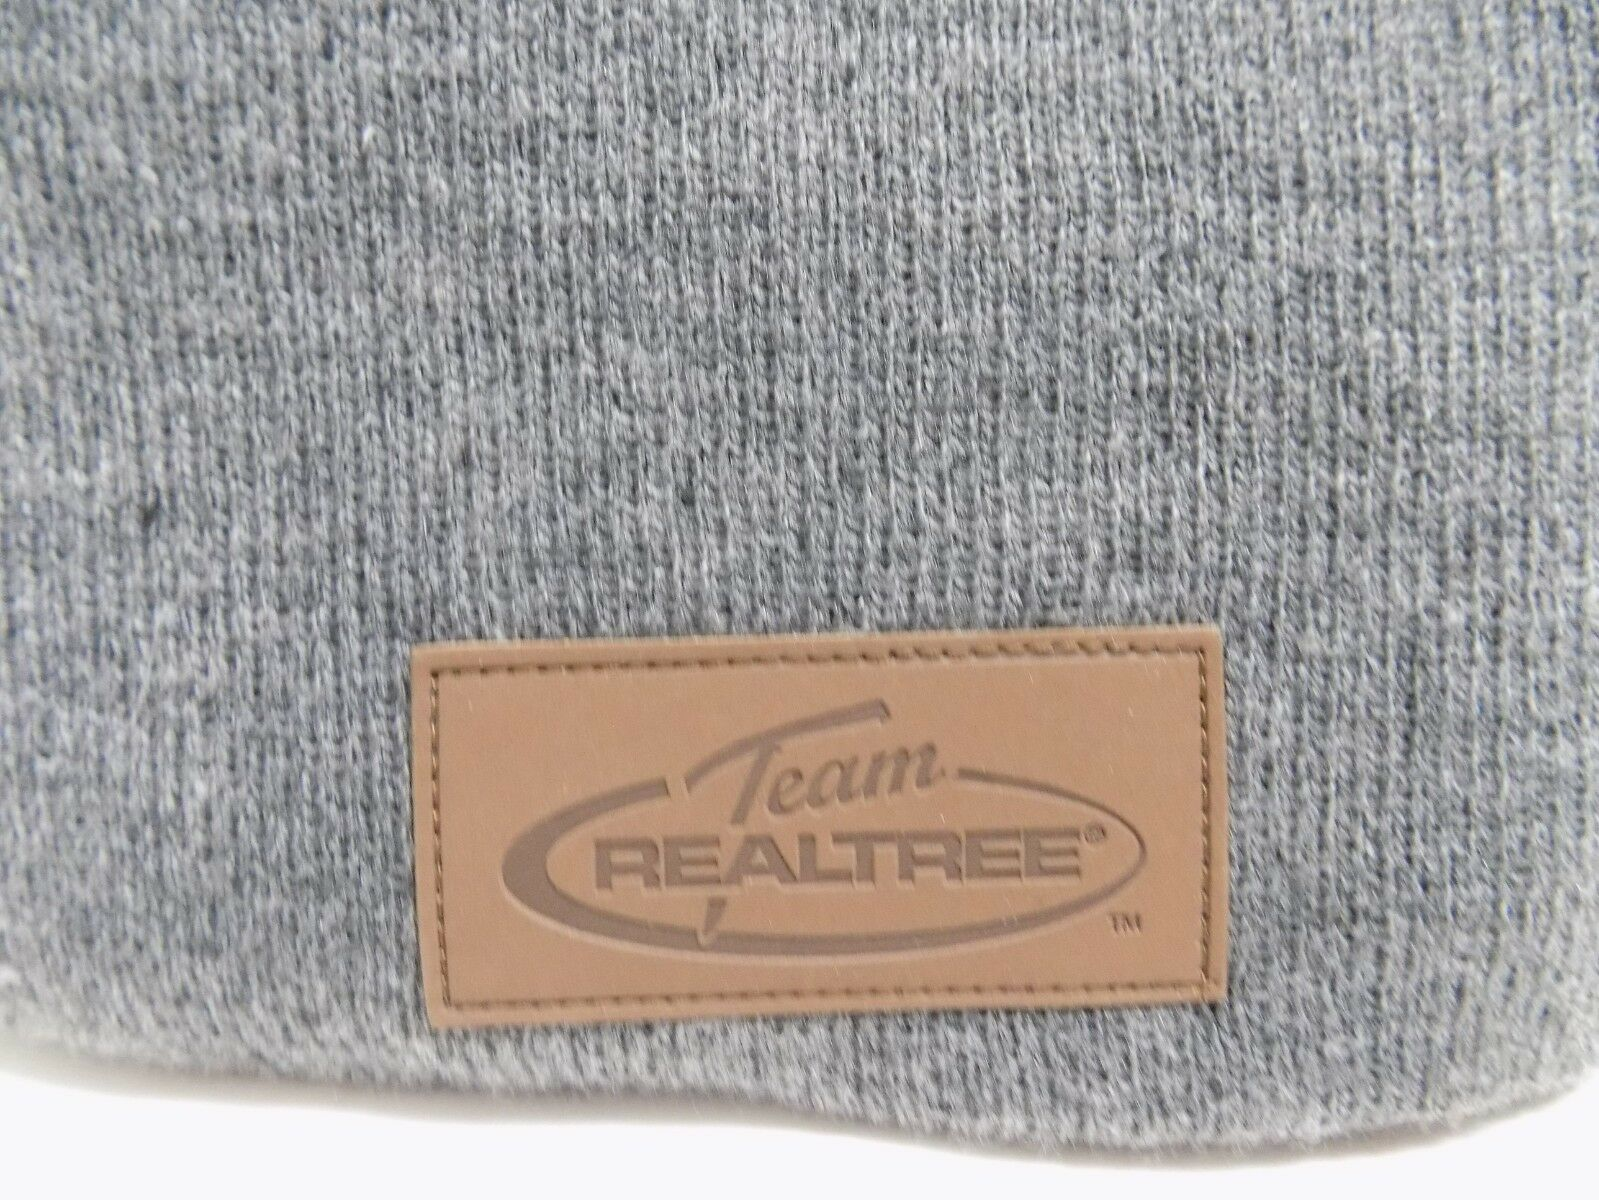 REALTREE STRETCH KNIT CAP WARM WINTER HAT BEANIE ACRYLIC WASHABLE ONE SIZE NWT